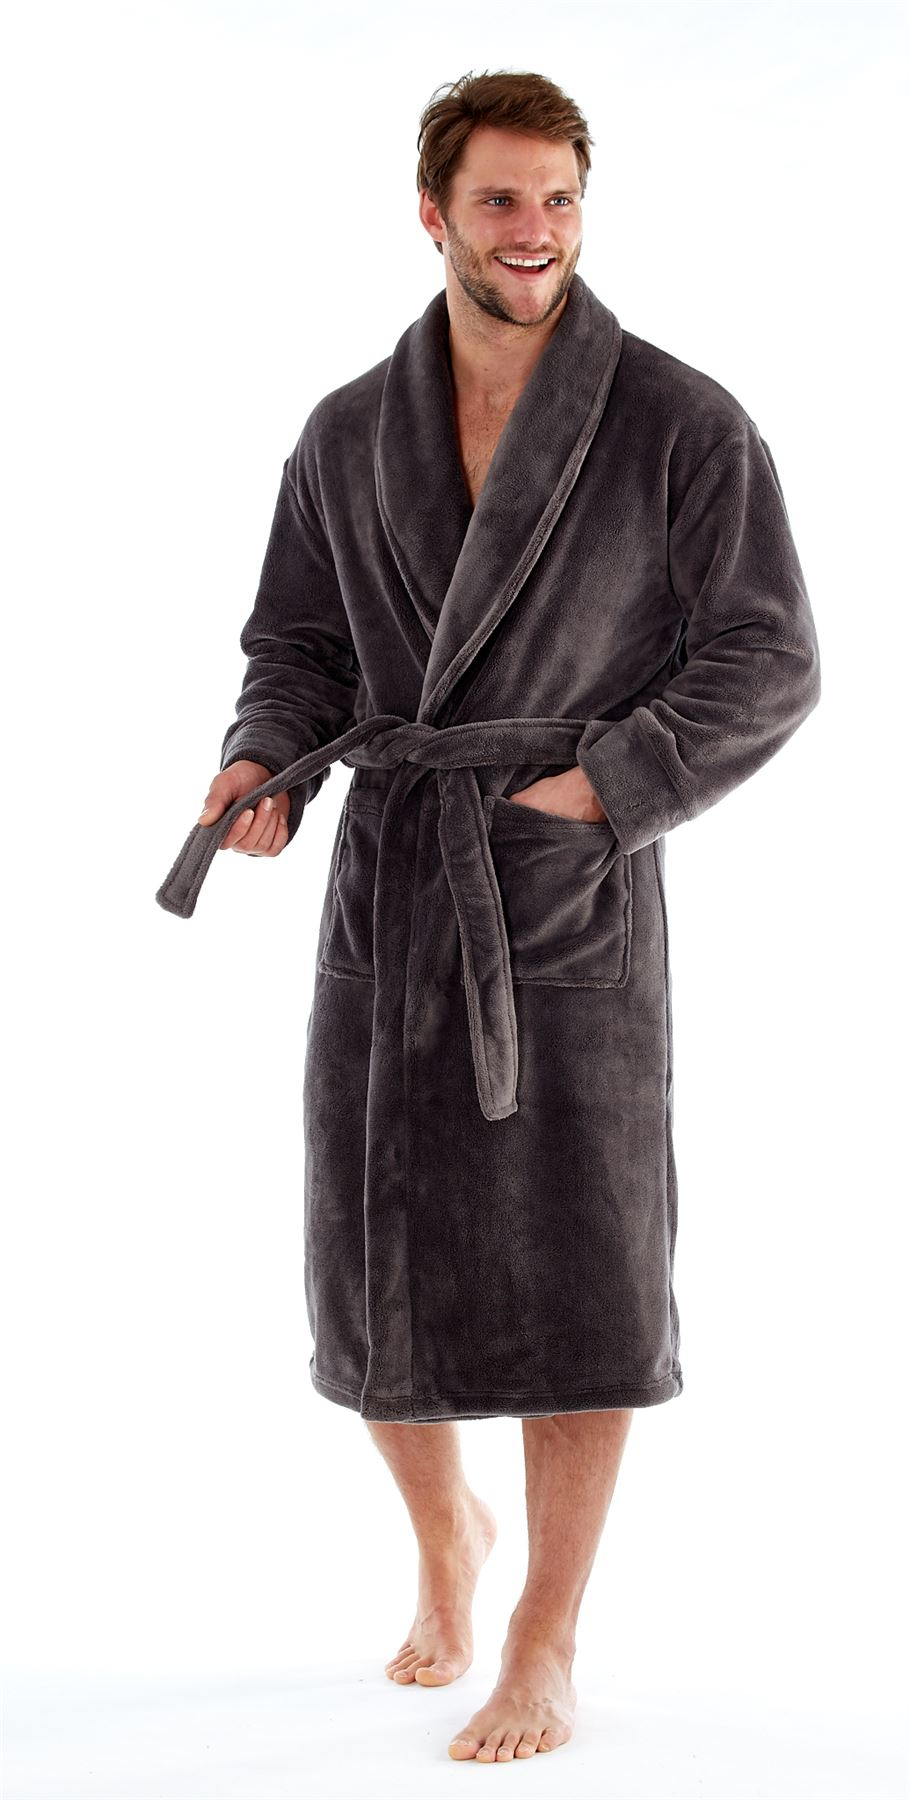 Harvey James Mens Luxury Robe Dressing Gown Fleece Super Soft Belted ...